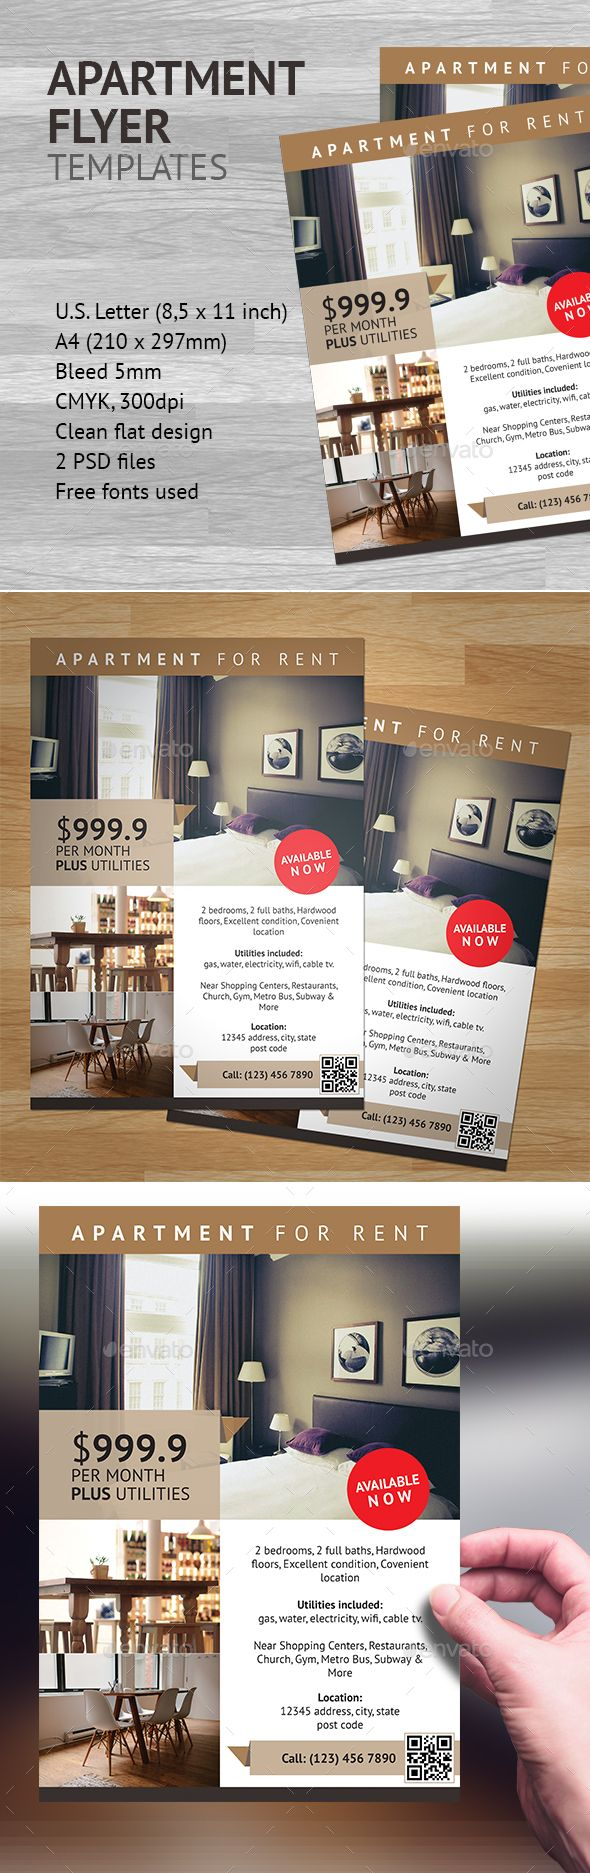 charmant Apartment Flyer Template 1